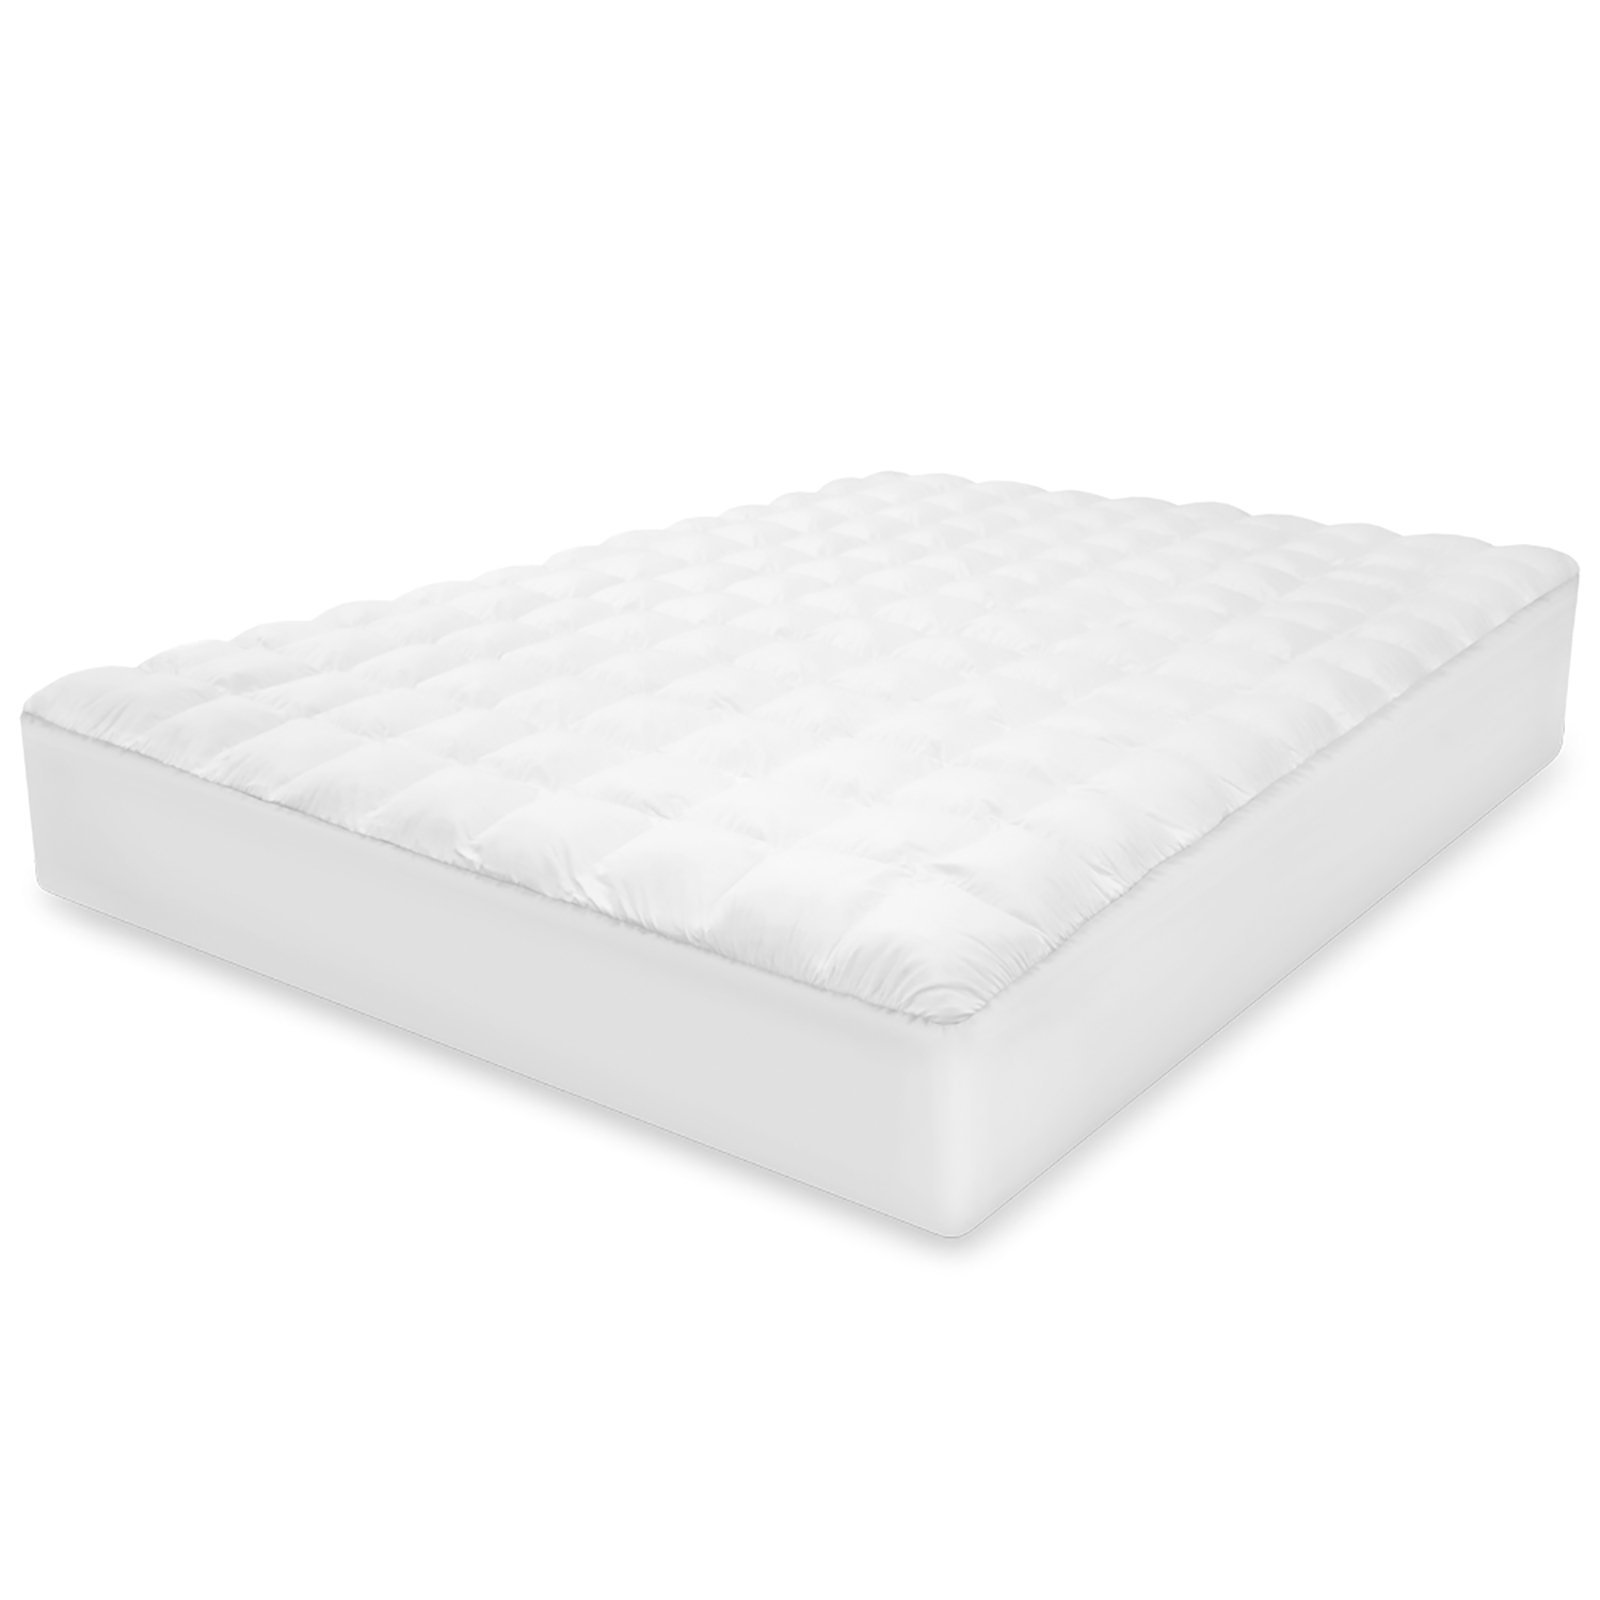 Soft-Tex SensorPedic MemoryLOFT Supreme 3.5 in. MF ; Fibe...